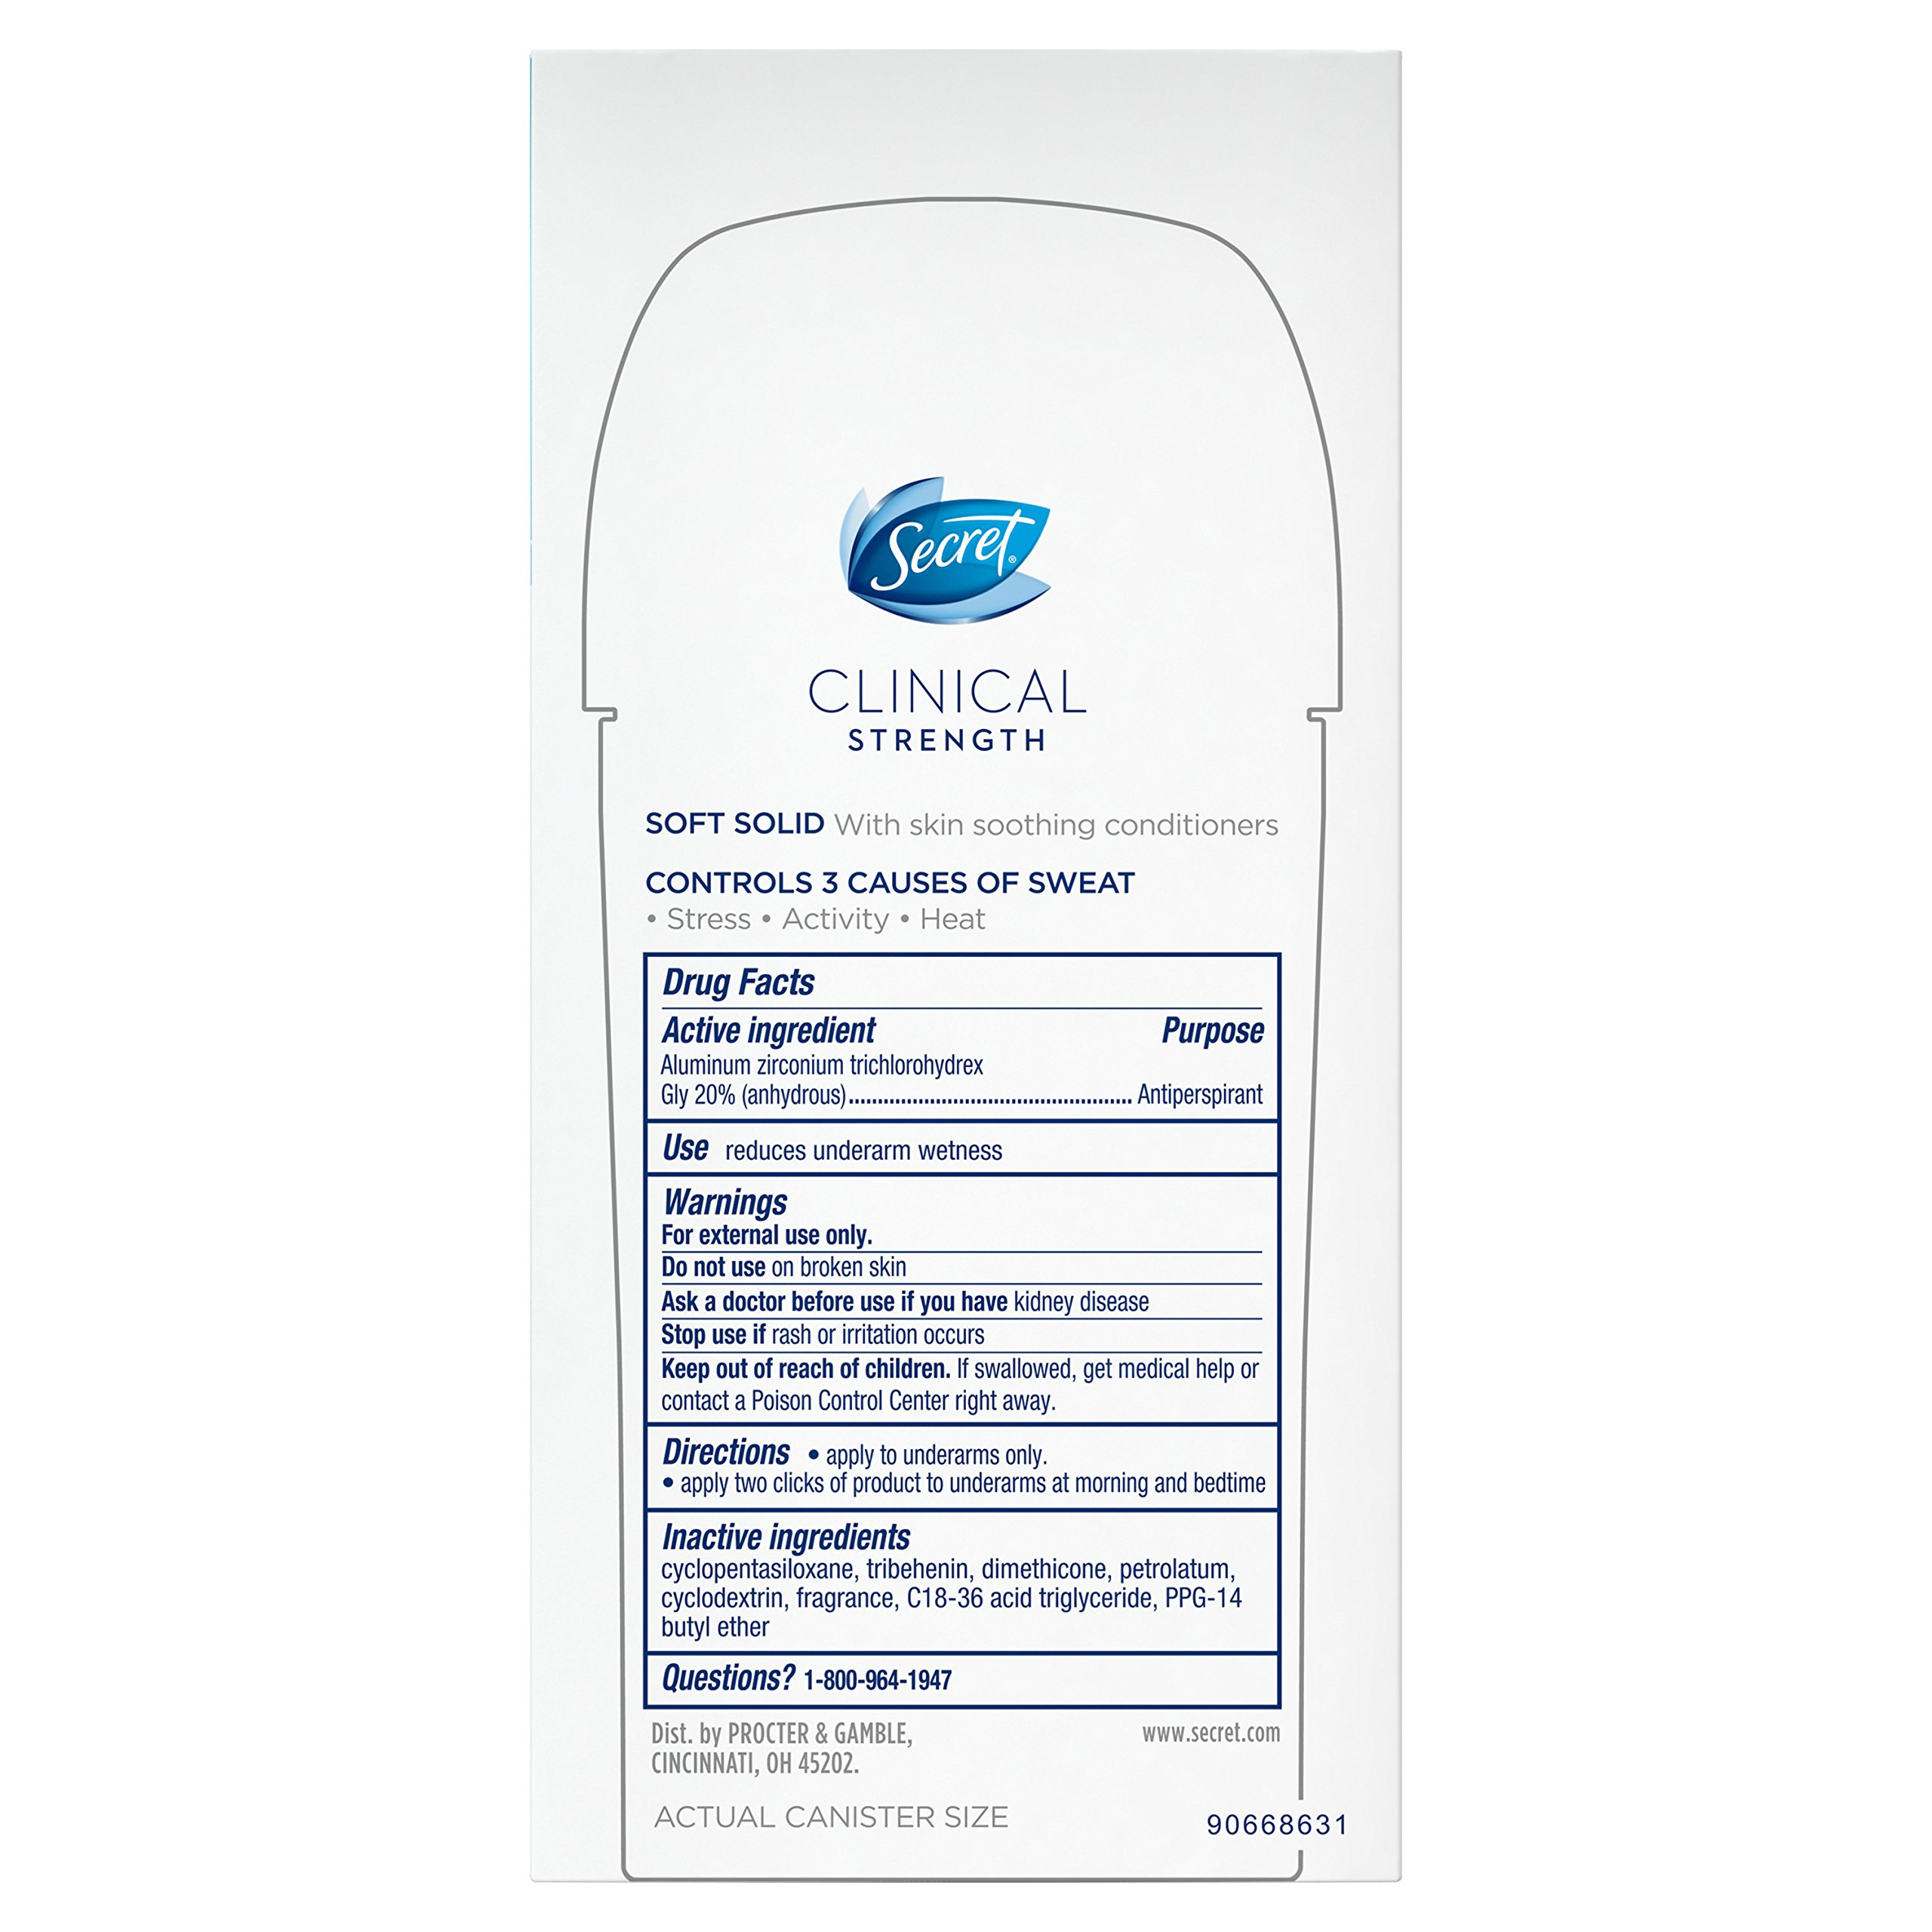 Secret Clinical Strength Smooth Solid, Waterproof Women's Anti-Perspirant and Deodorant, All Day Fresh Scent - 2.6 Oz  Packaging may Vary by Secret (Image #4)